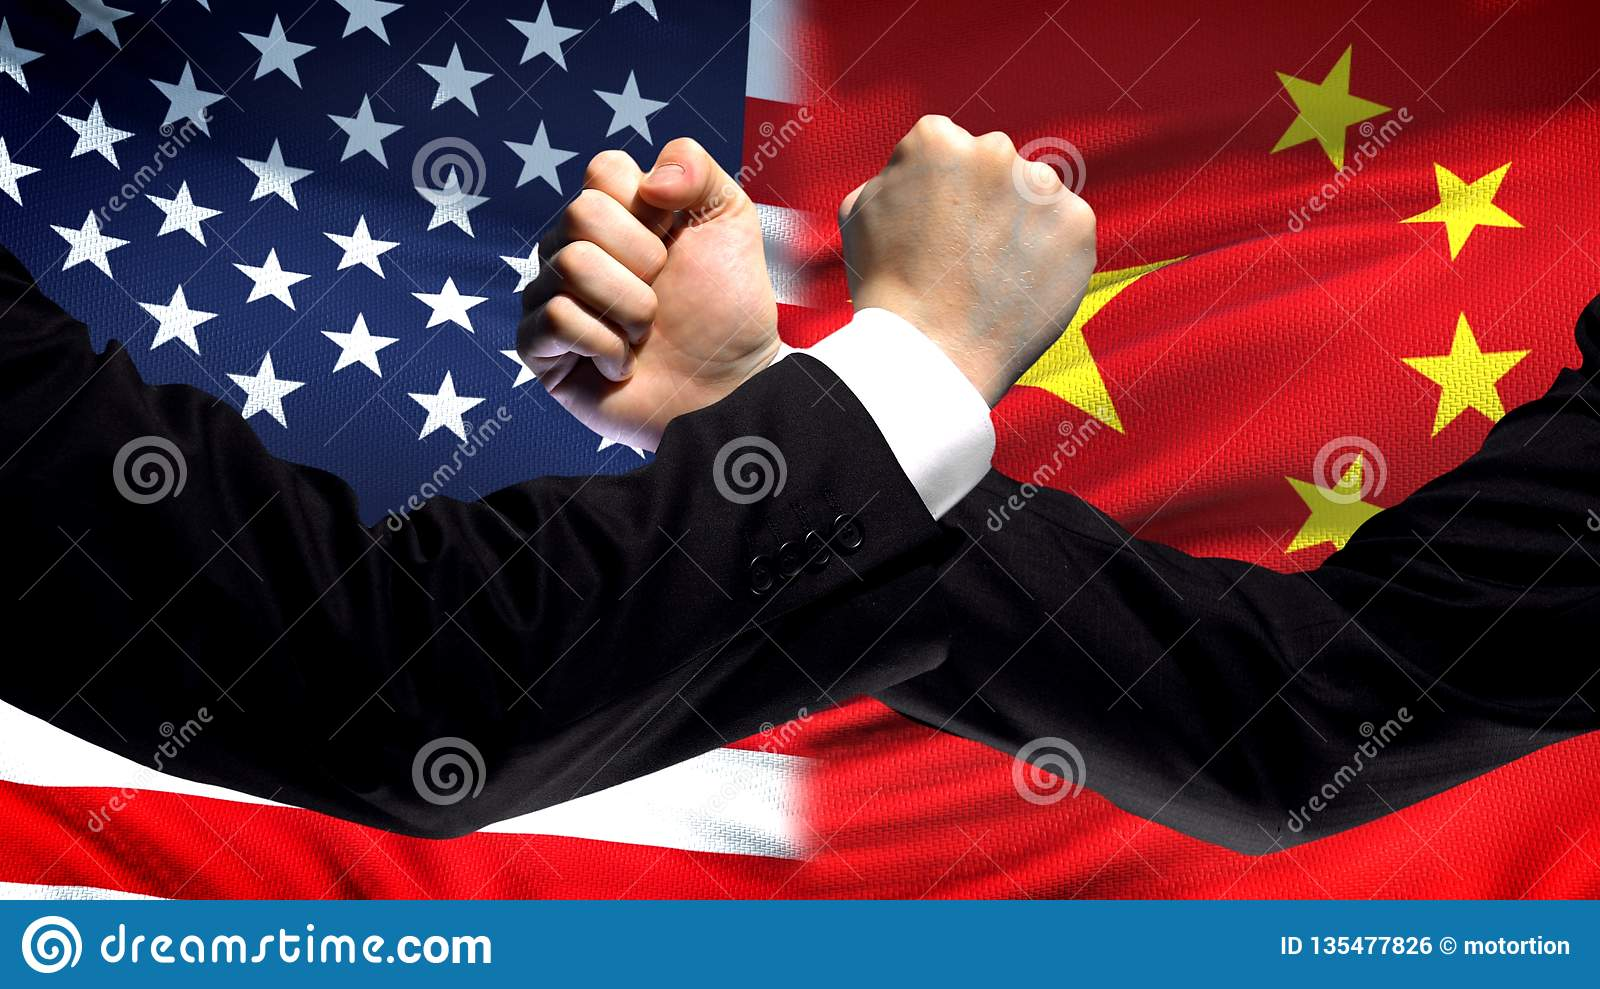 US vs China confrontation, countries disagreement, fists on flag background